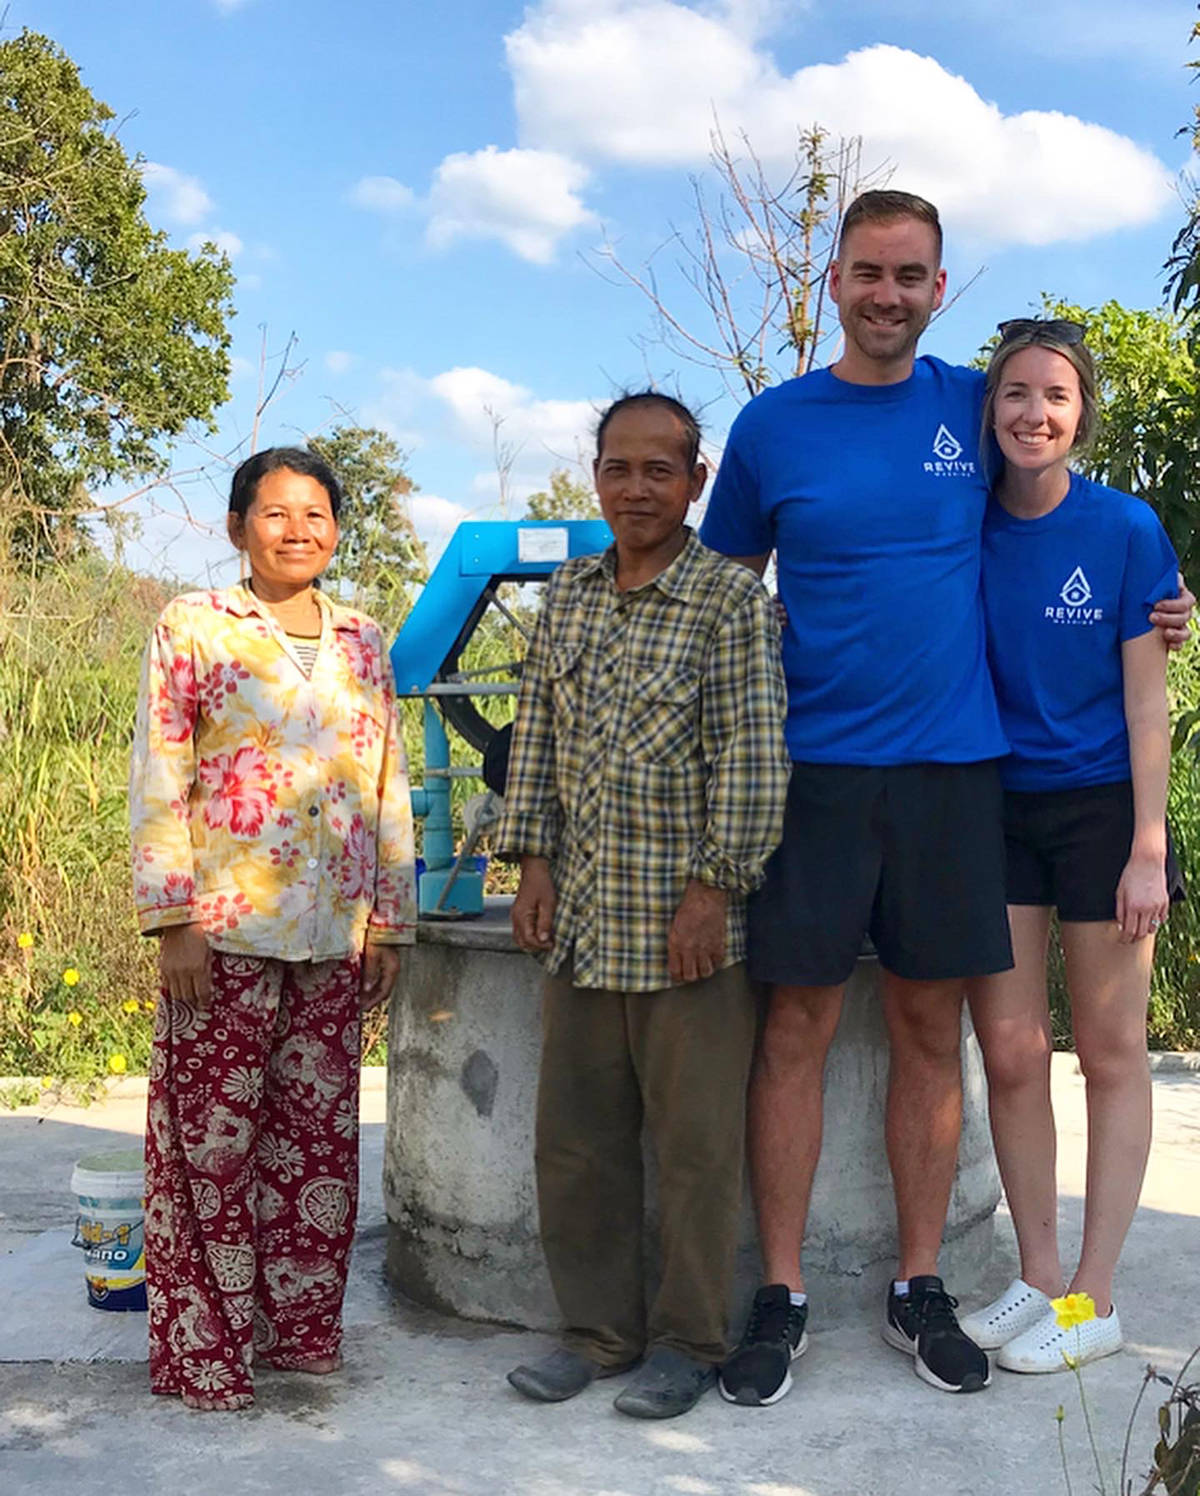 David Moerman and his wife Alex stand with a local family in December, 2019, in Pursat, Cambodia in front of a water well Moerman's company, Revive Washing, funded. (Photo: Submitted)